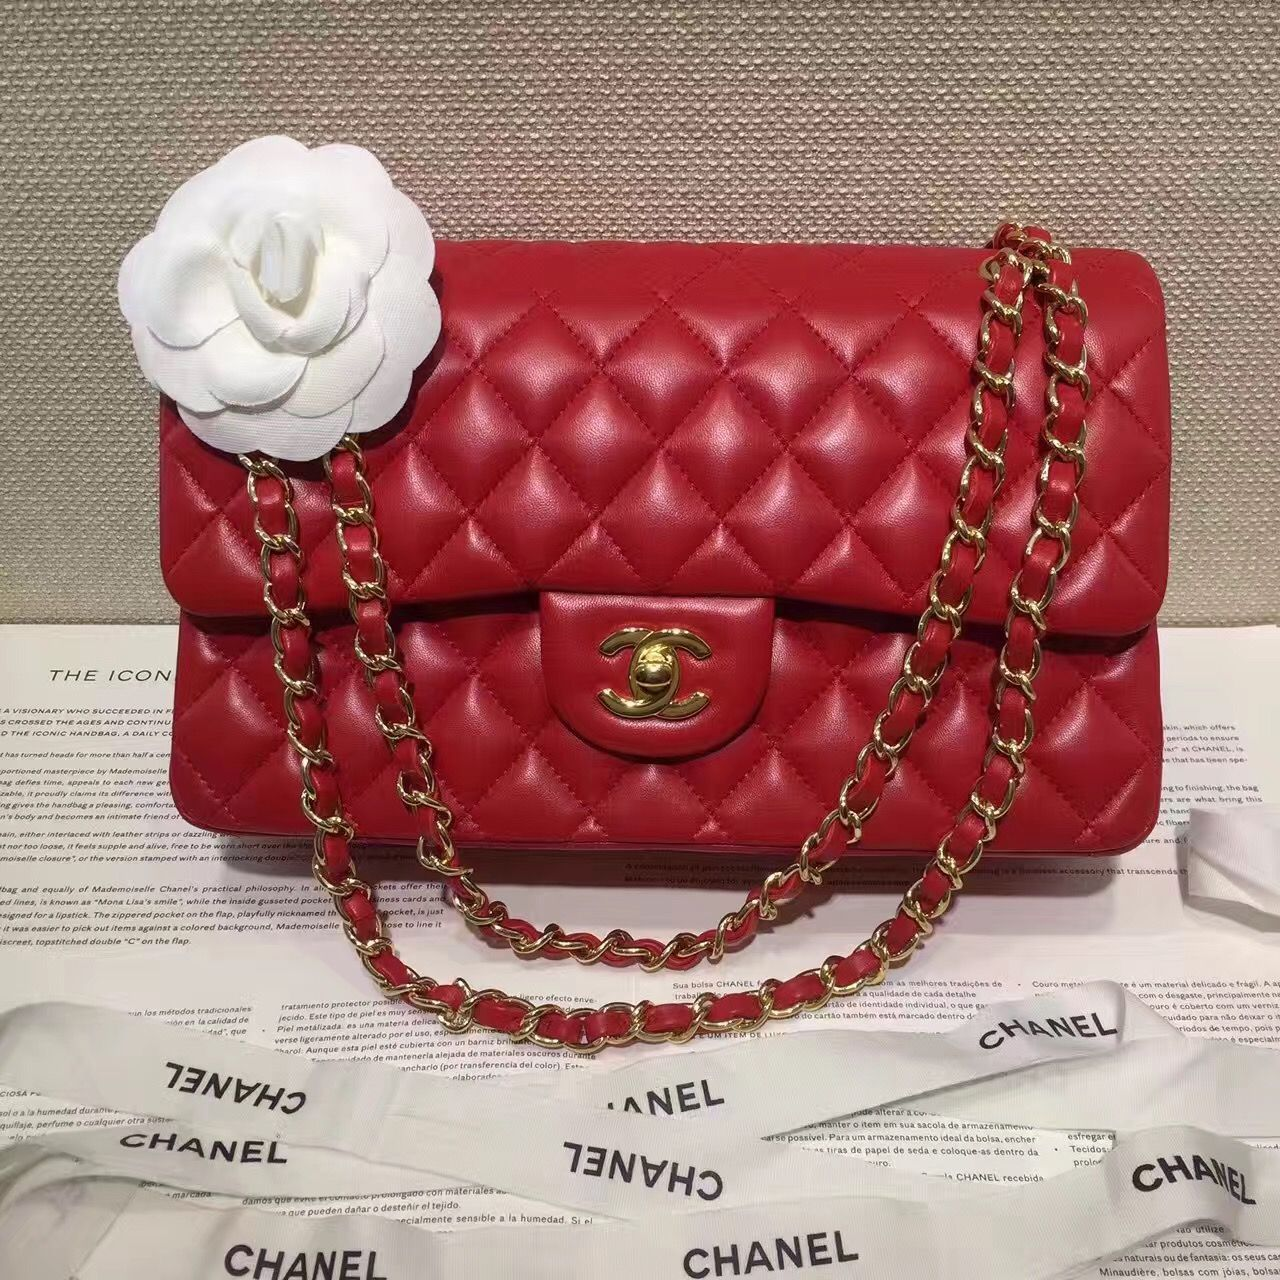 b39f8f78cb Bottega Veneta · Authentic Quality 1 1 Mirror Replica Chanel Classic Flap  Bag Medium Red Lambskin Silver Hardware